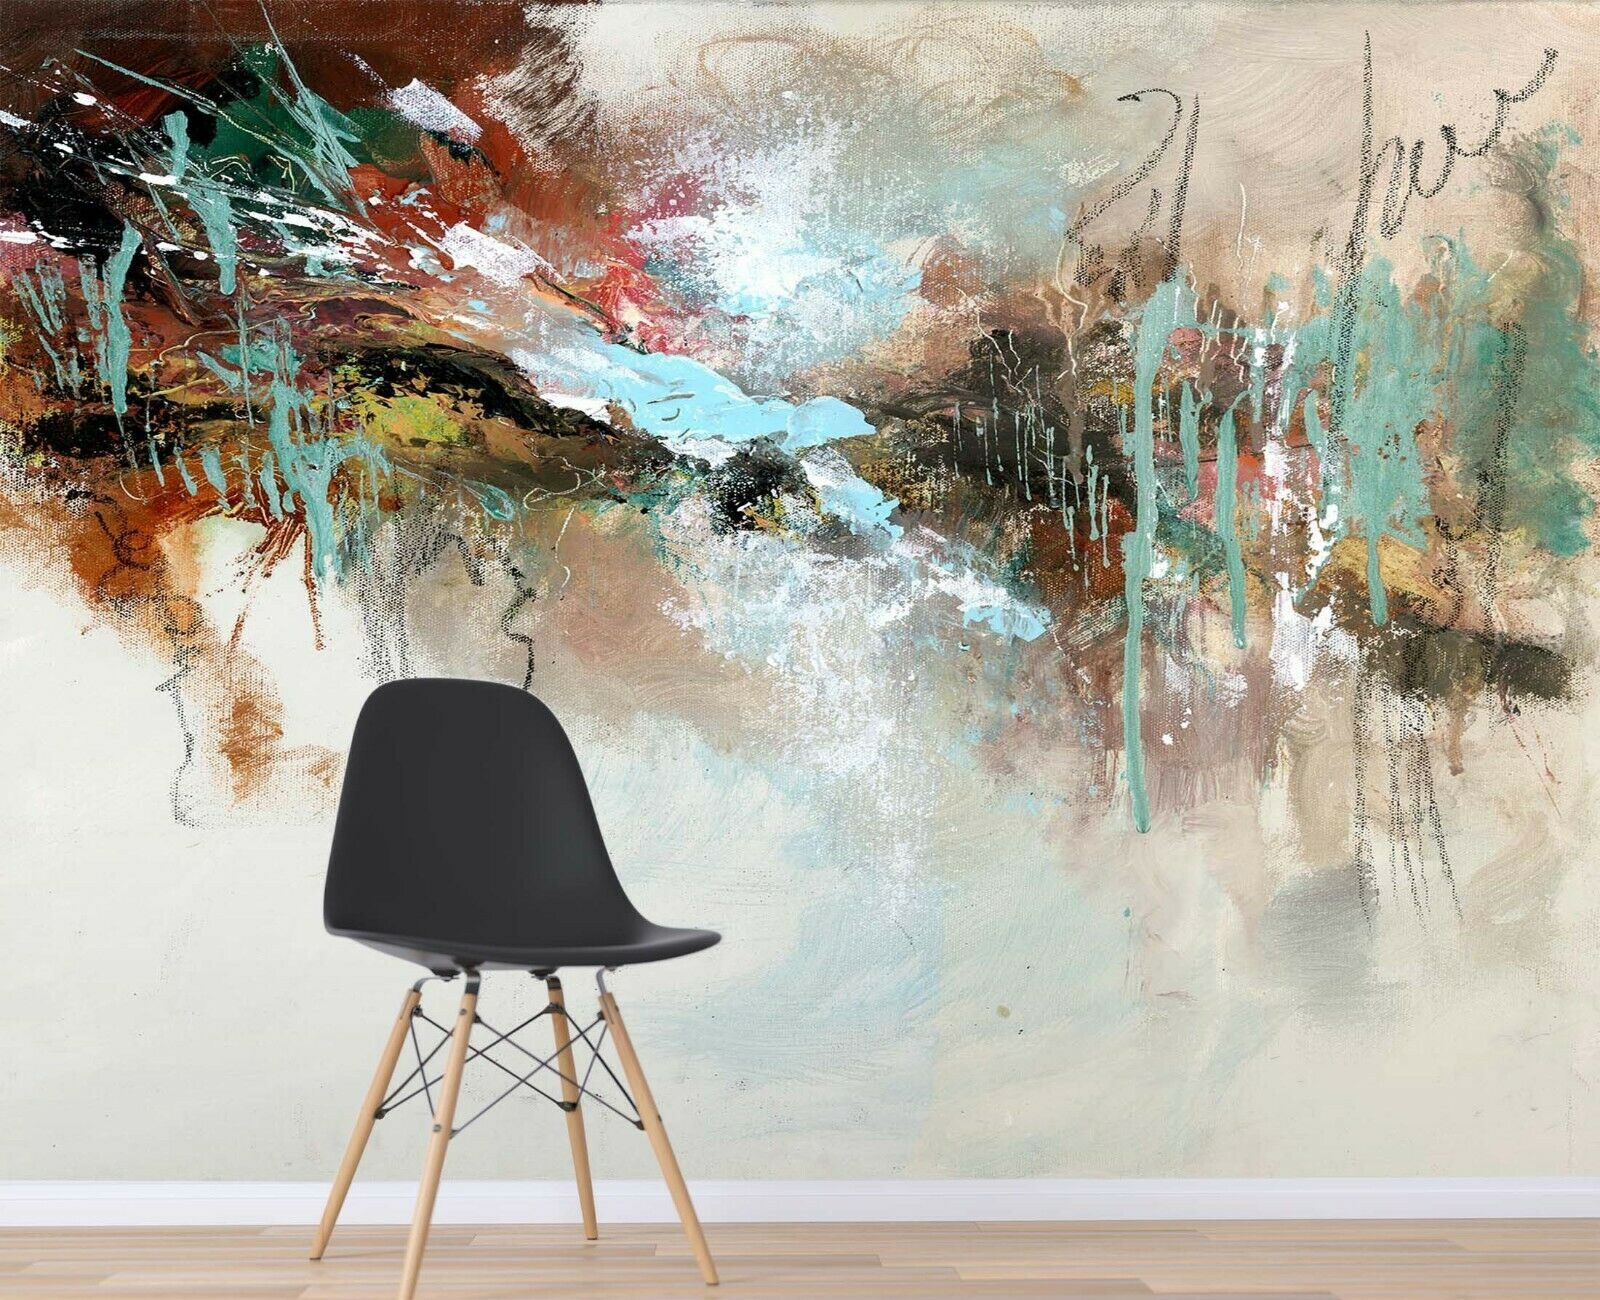 3D Farbe Aabstract I07 Wallpaper Mural Sefl-adhesive Removable Anne Doyle Zoe